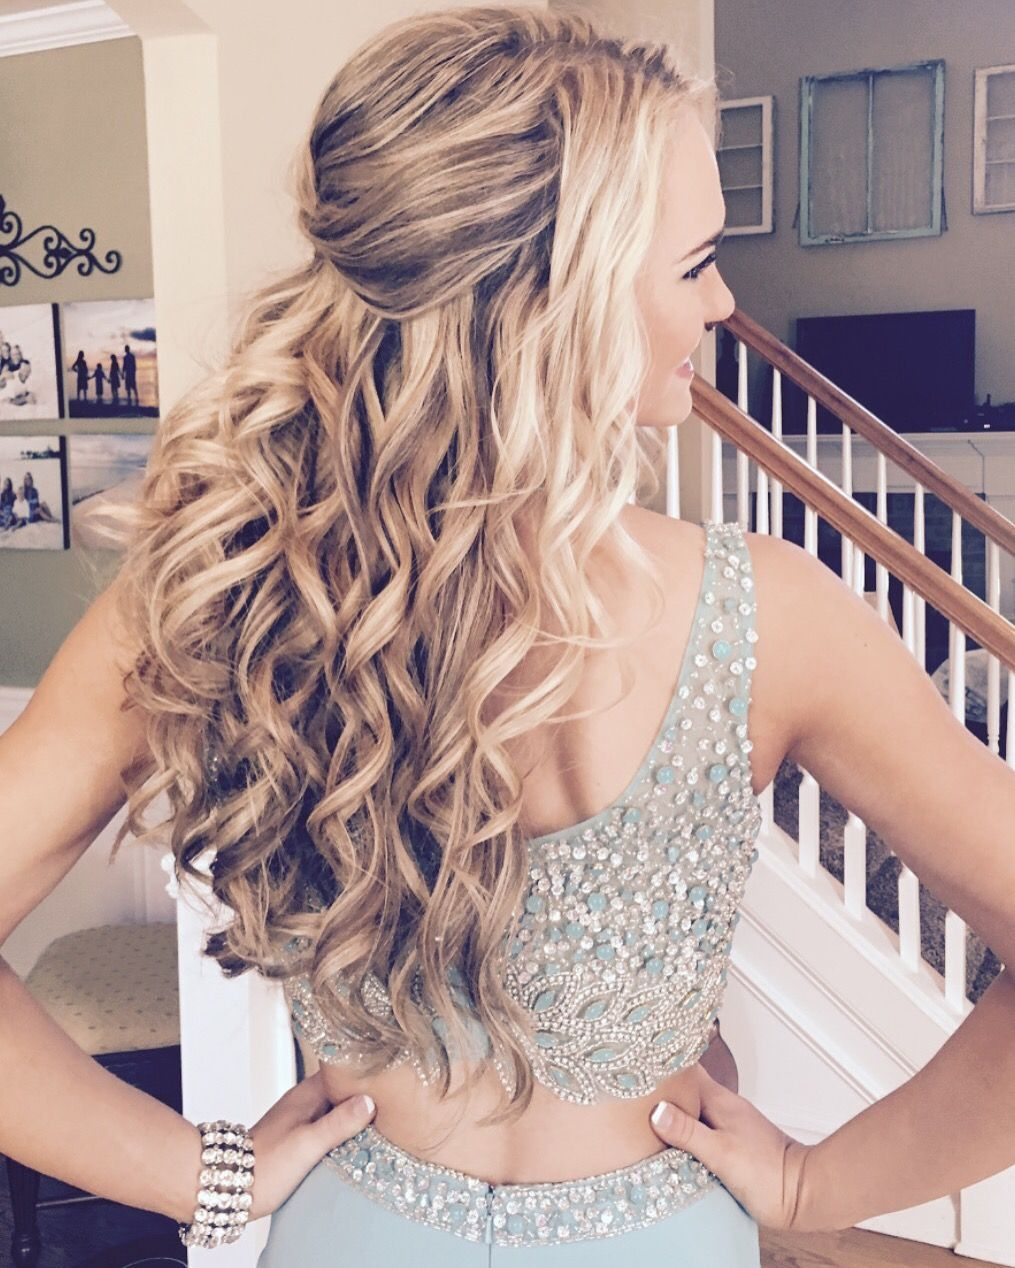 Perfect down do formal hair style by formalfaces.com ...